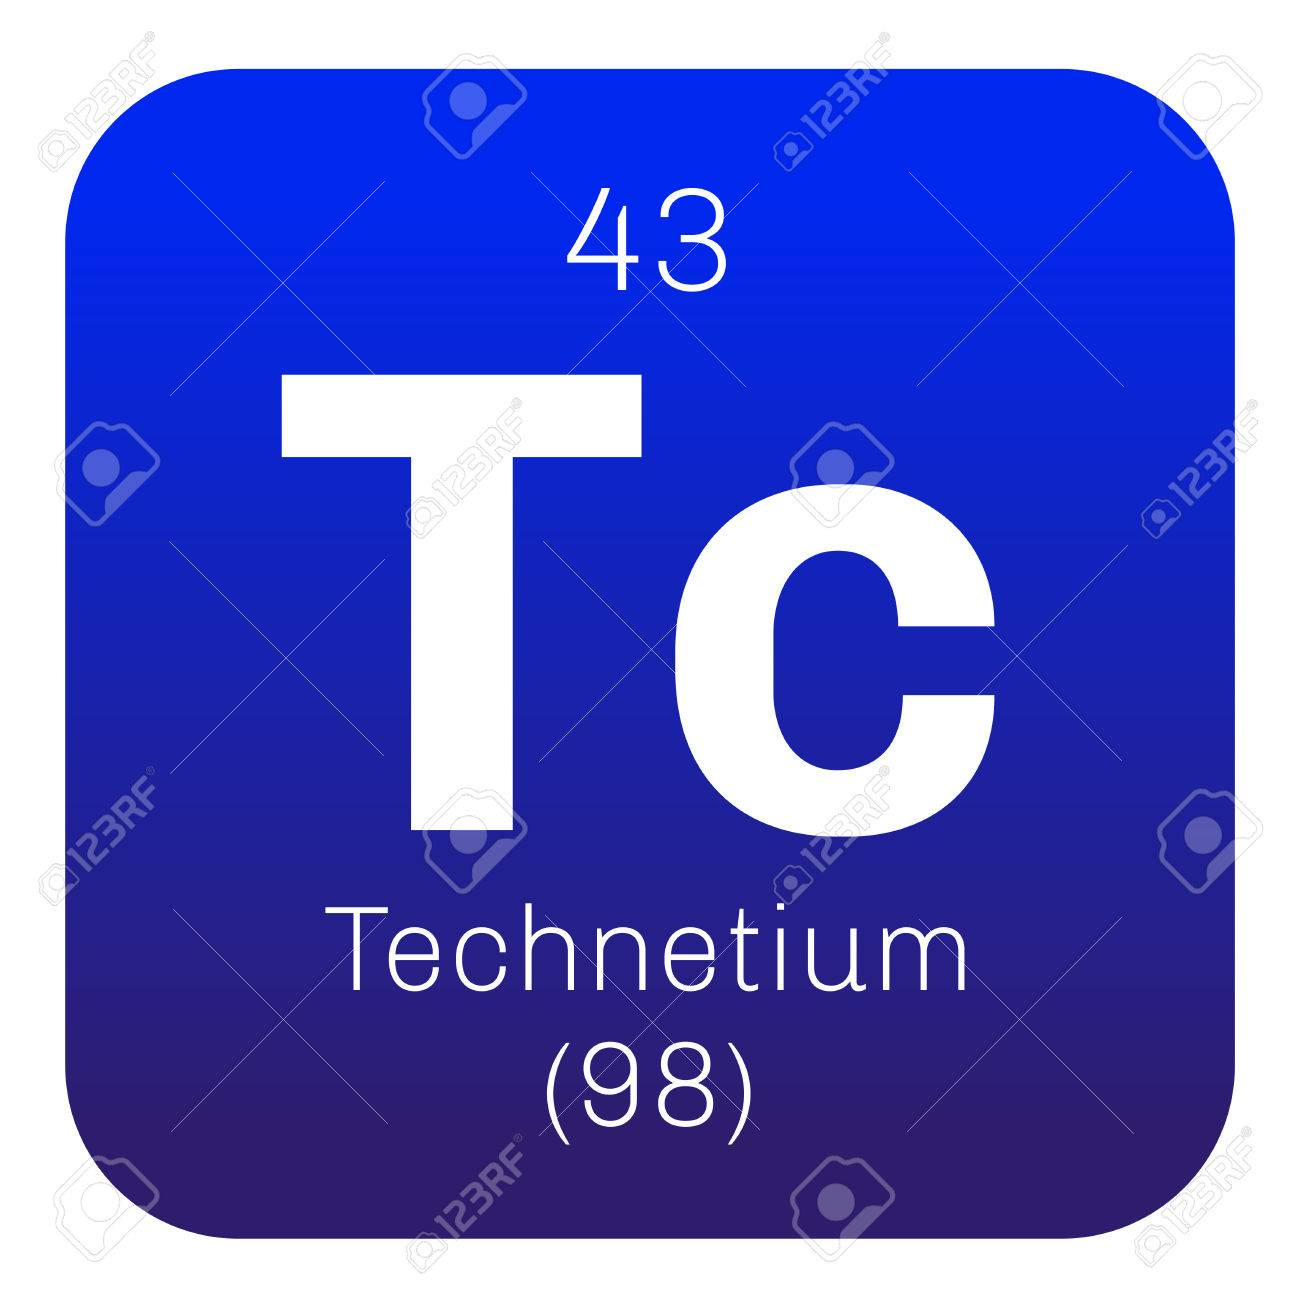 Technetium chemical element lightest radioactive element colored technetium chemical element lightest radioactive element colored icon with atomic number and atomic weight urtaz Images